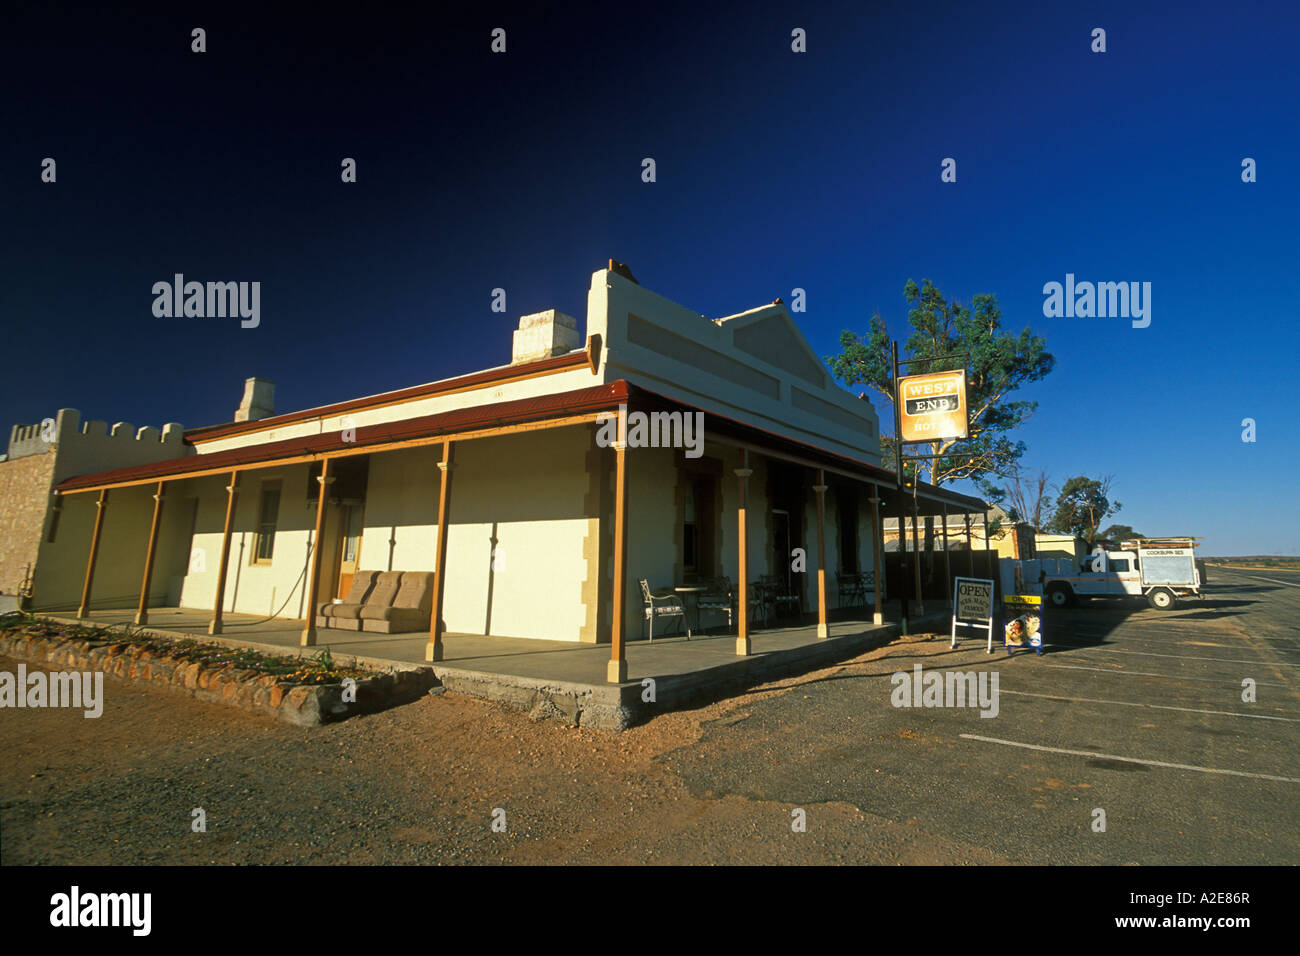 West End Hotel on the remote and sparsely populated Barrier Highway in South Australia - Stock Image